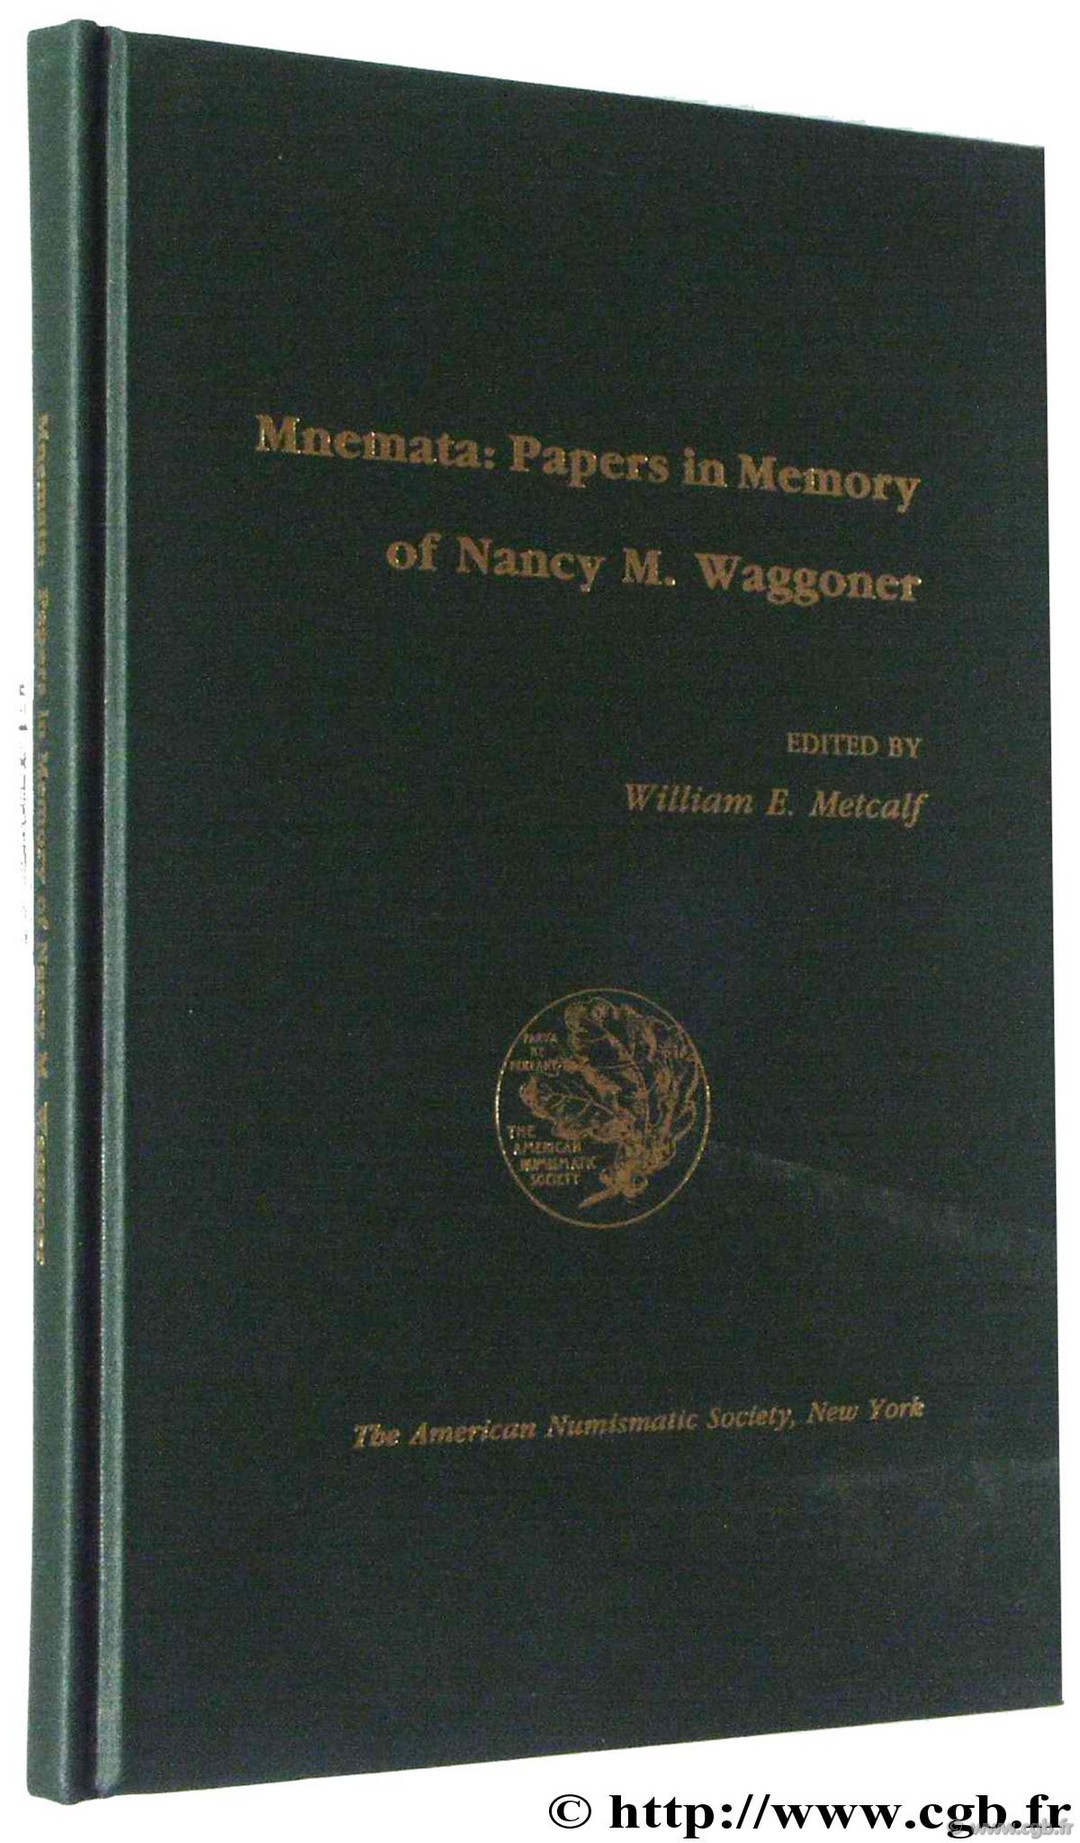 Mnemata : Papers in Memory of Nancy M. Waggoner, American Numismatic Society Divers